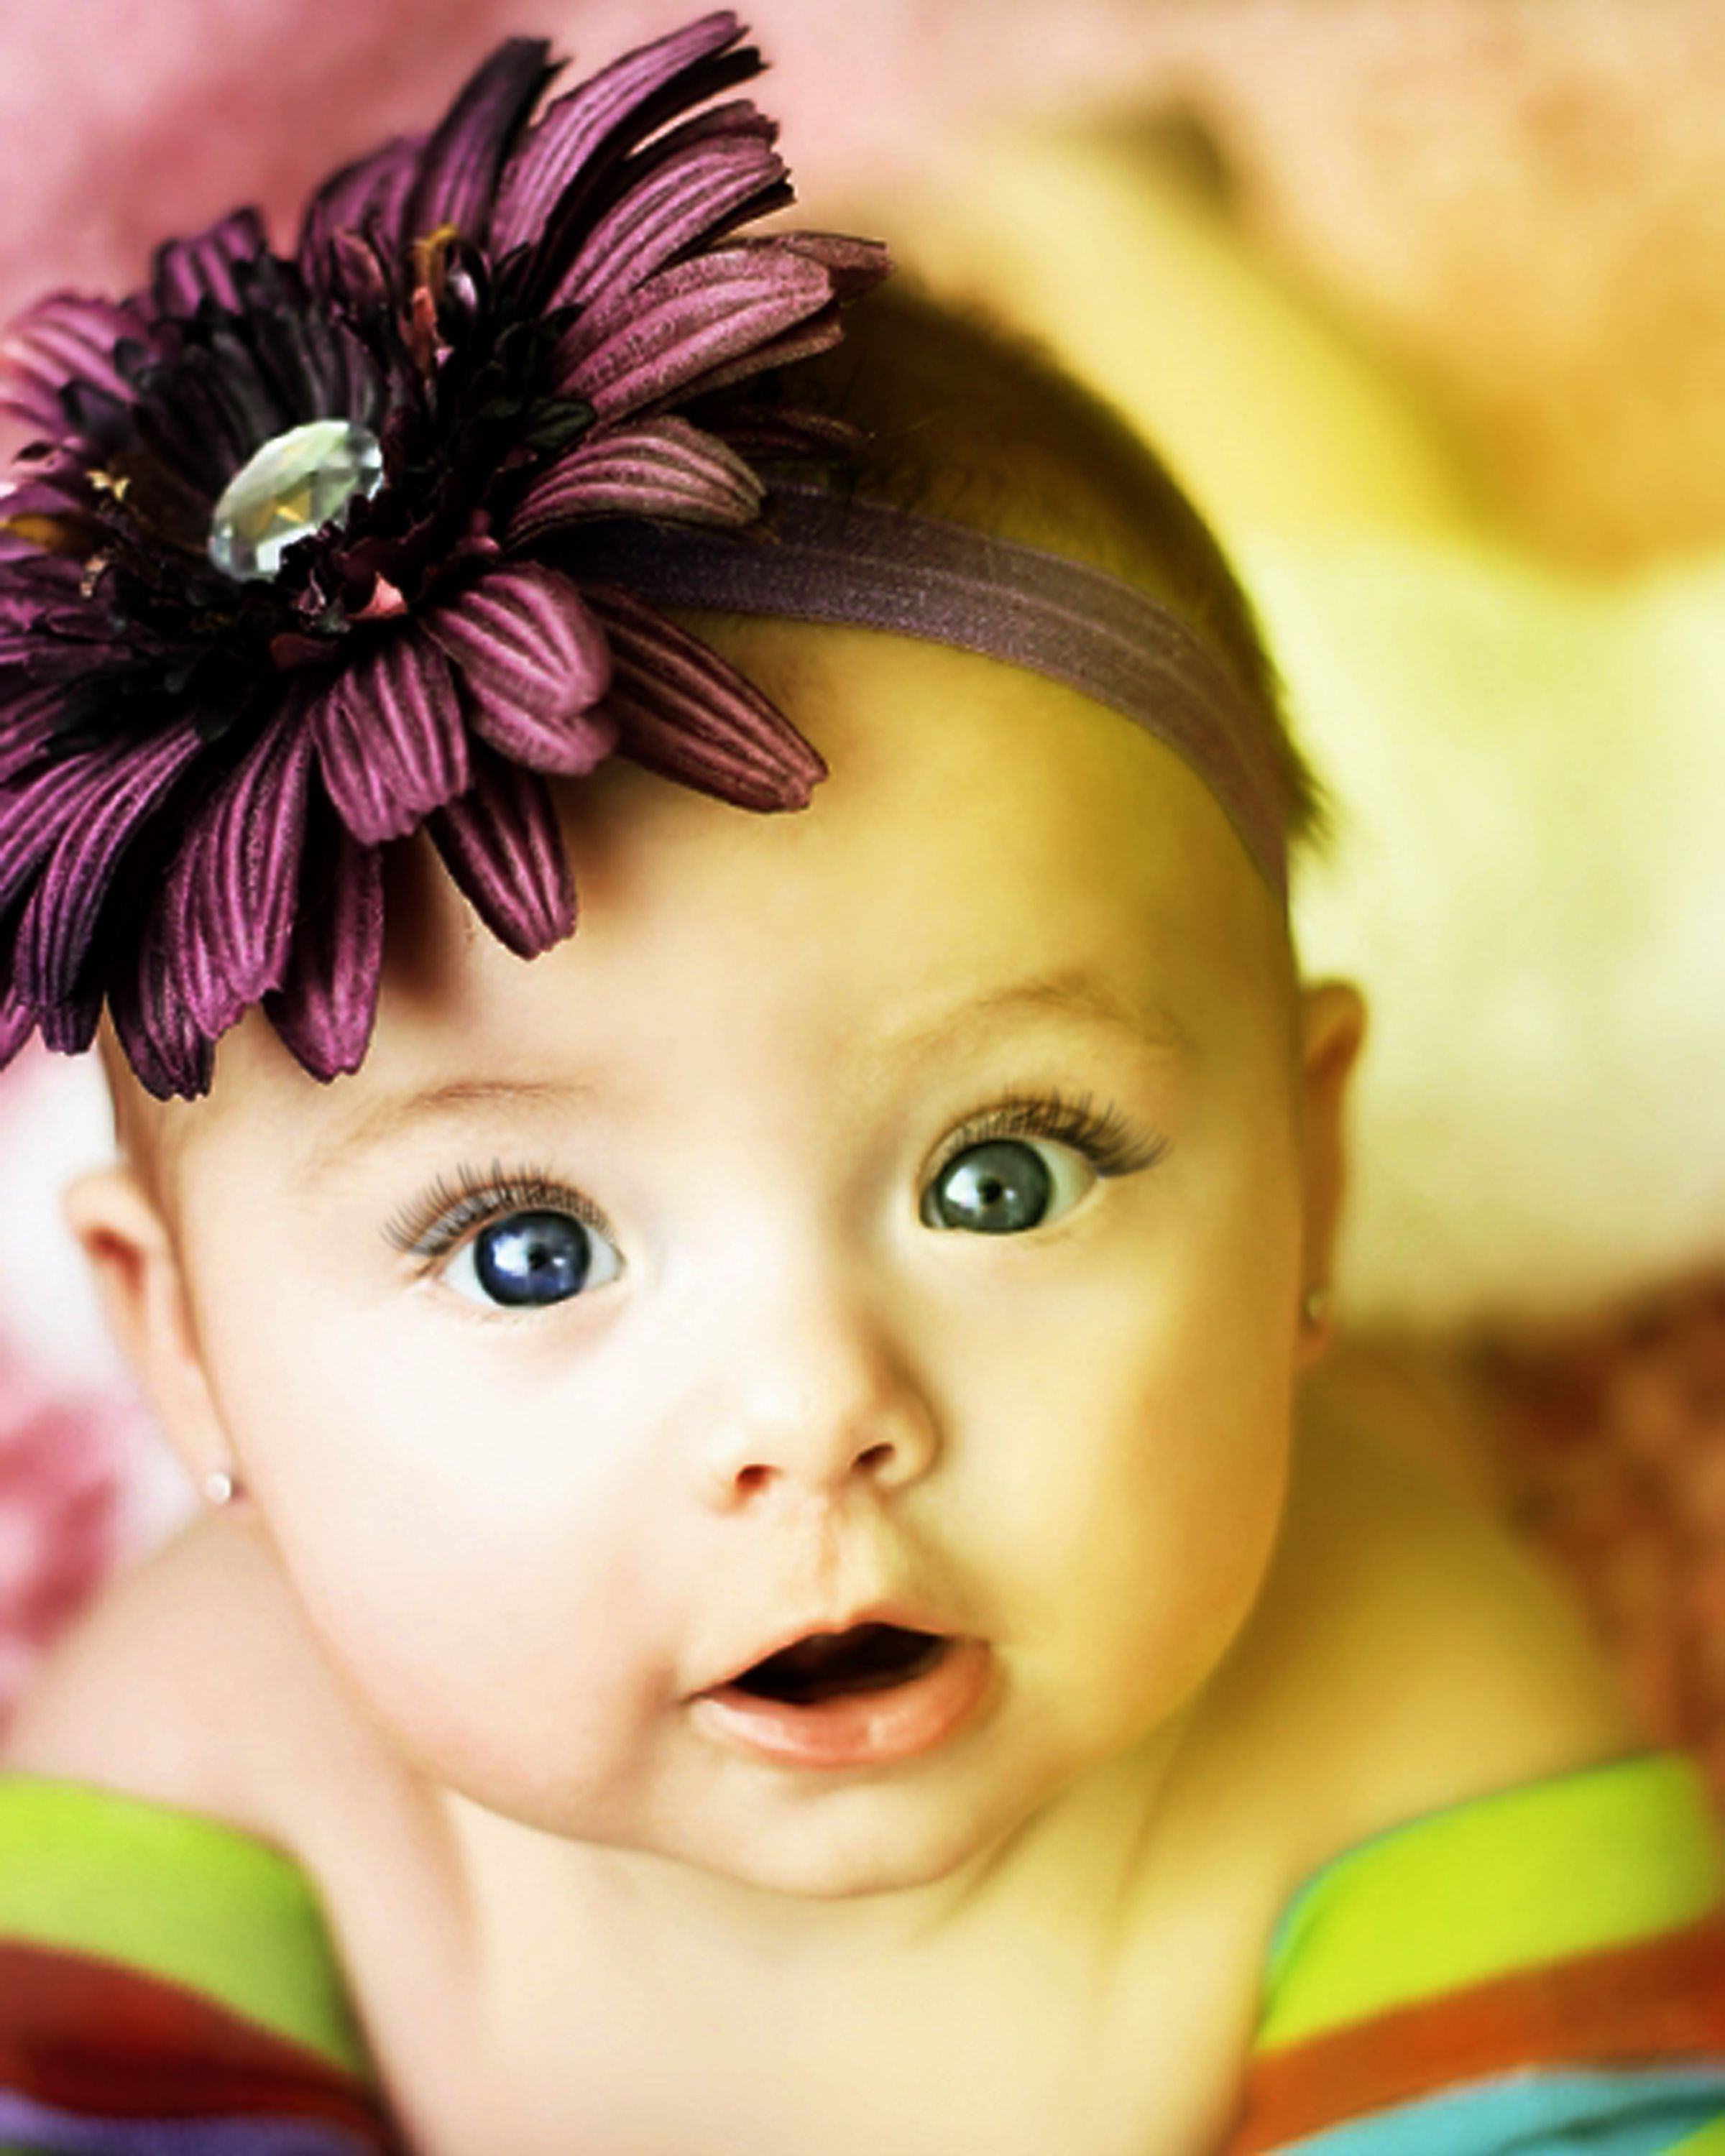 need to make head bands with large flowers on them for little girls portraits